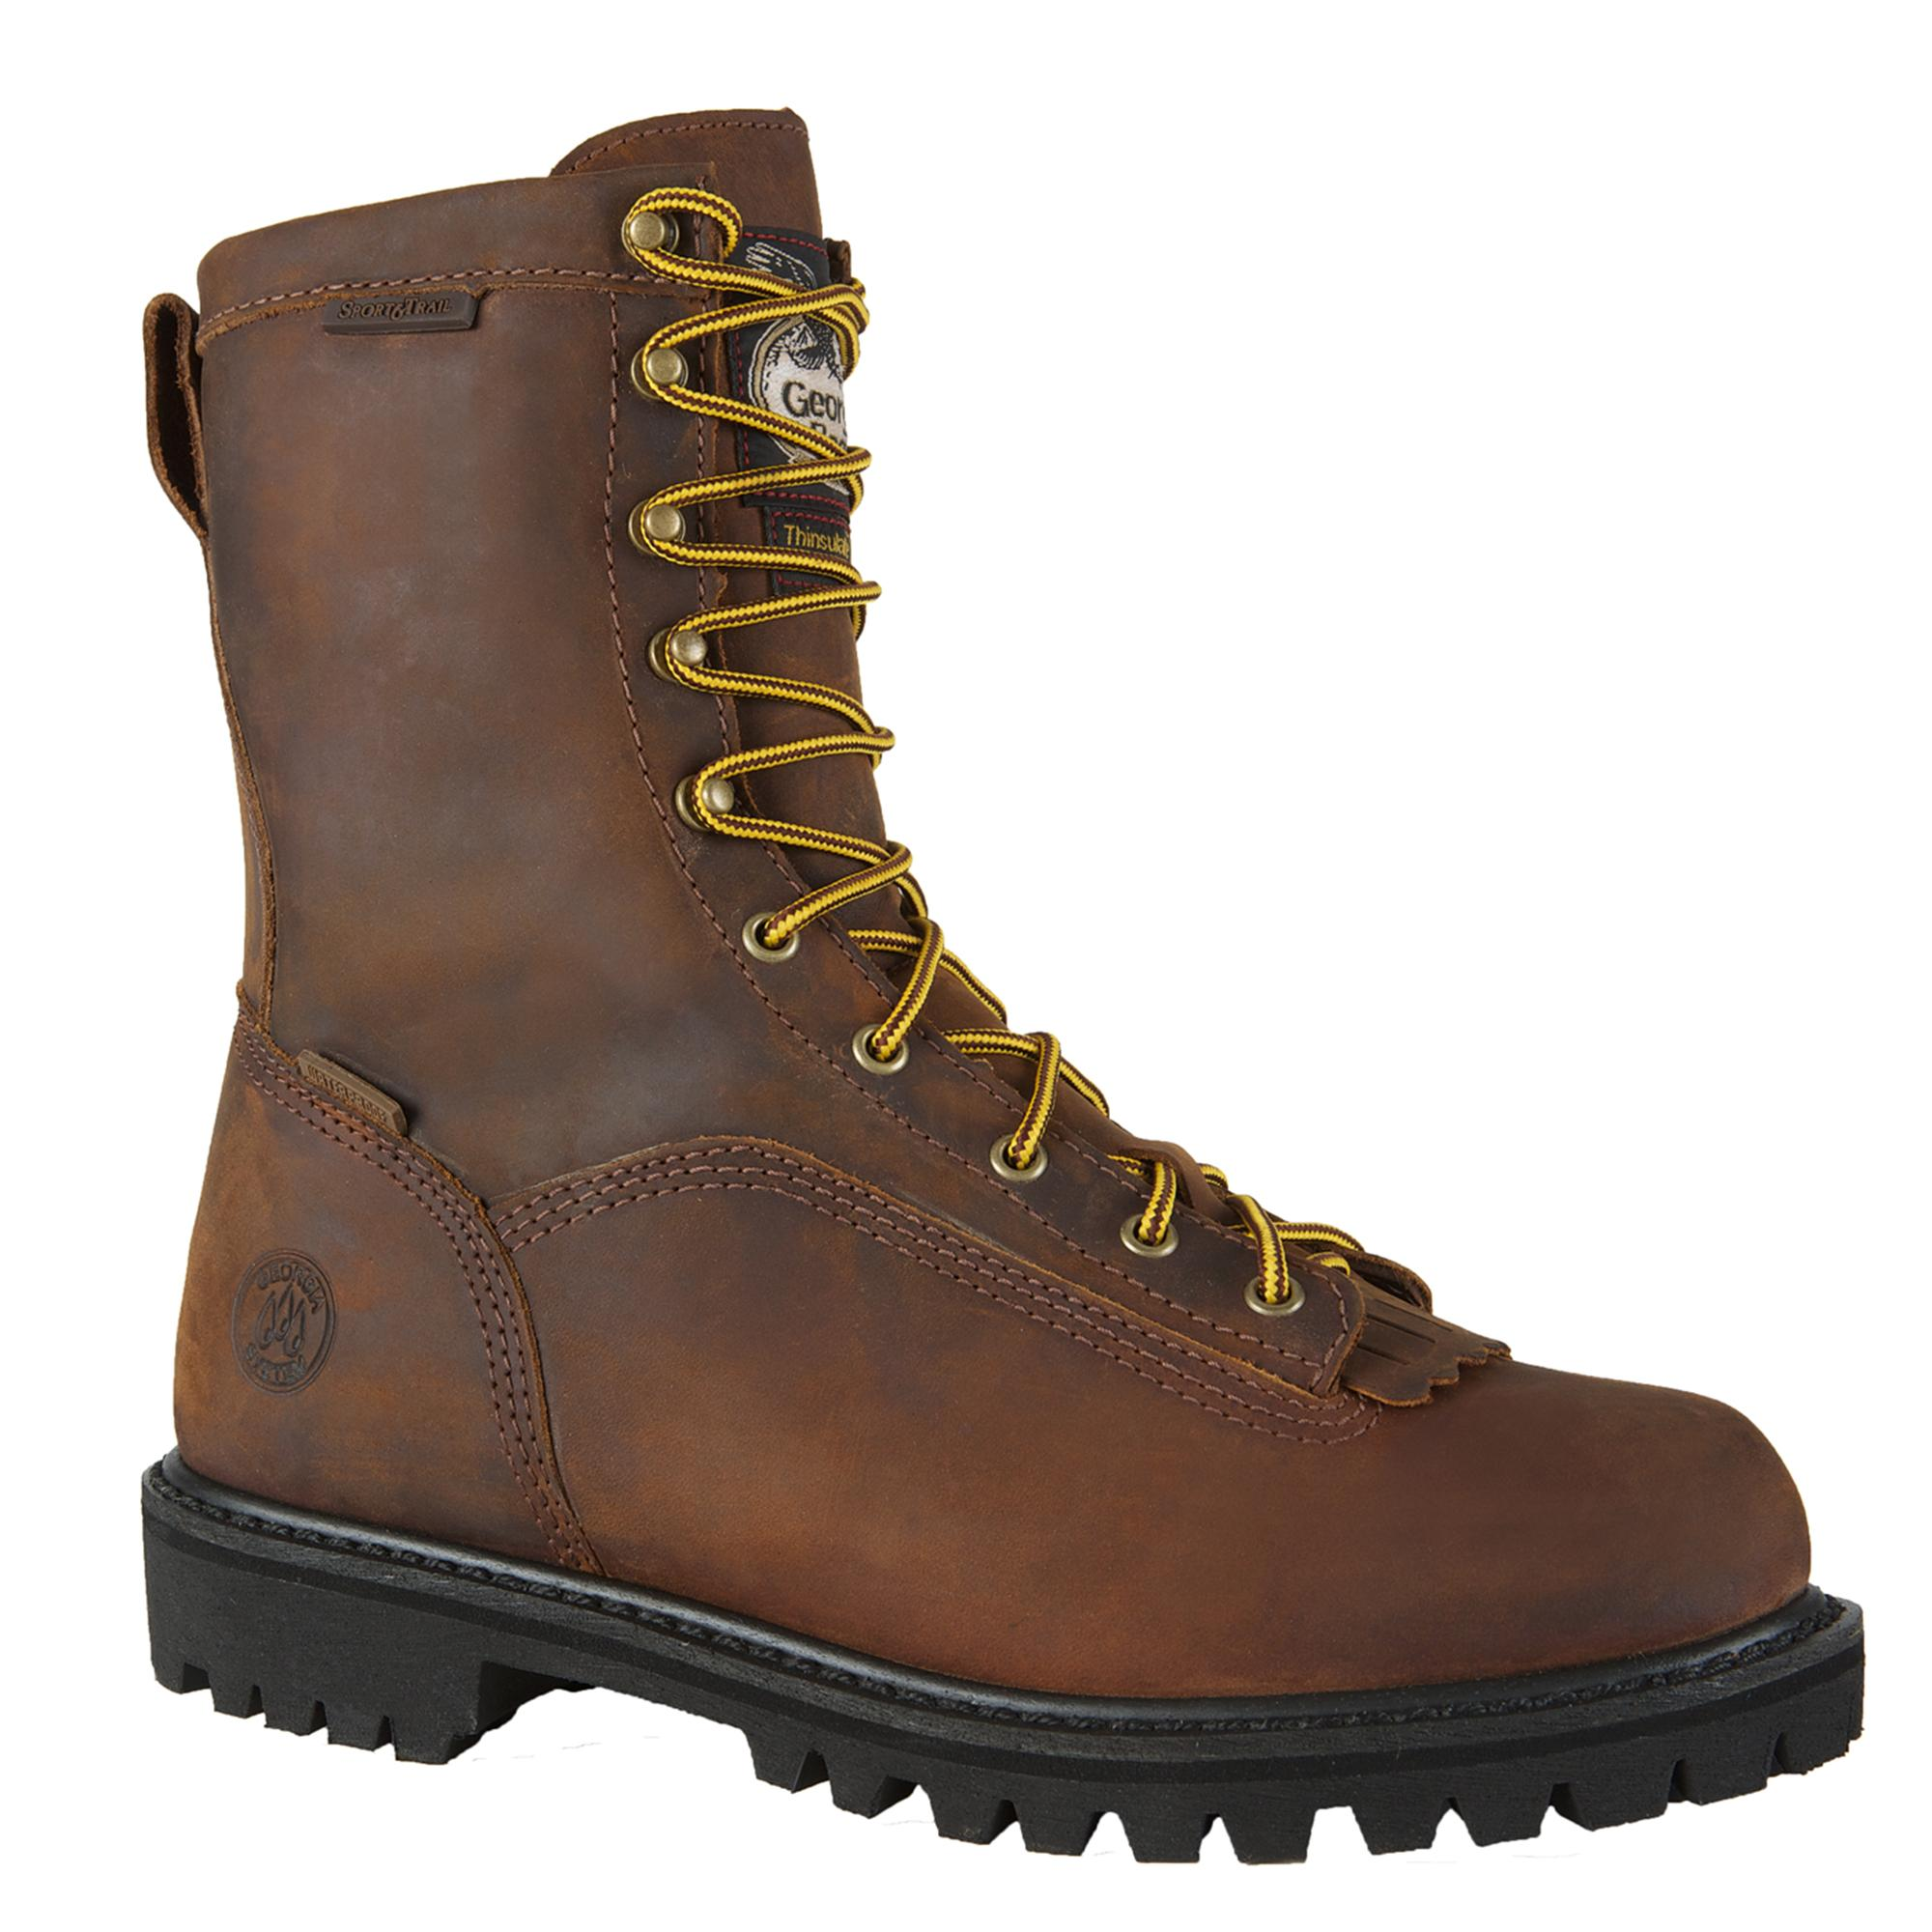 6ee398b5f4a Georgia Insulated Waterproof Logger Work Boots